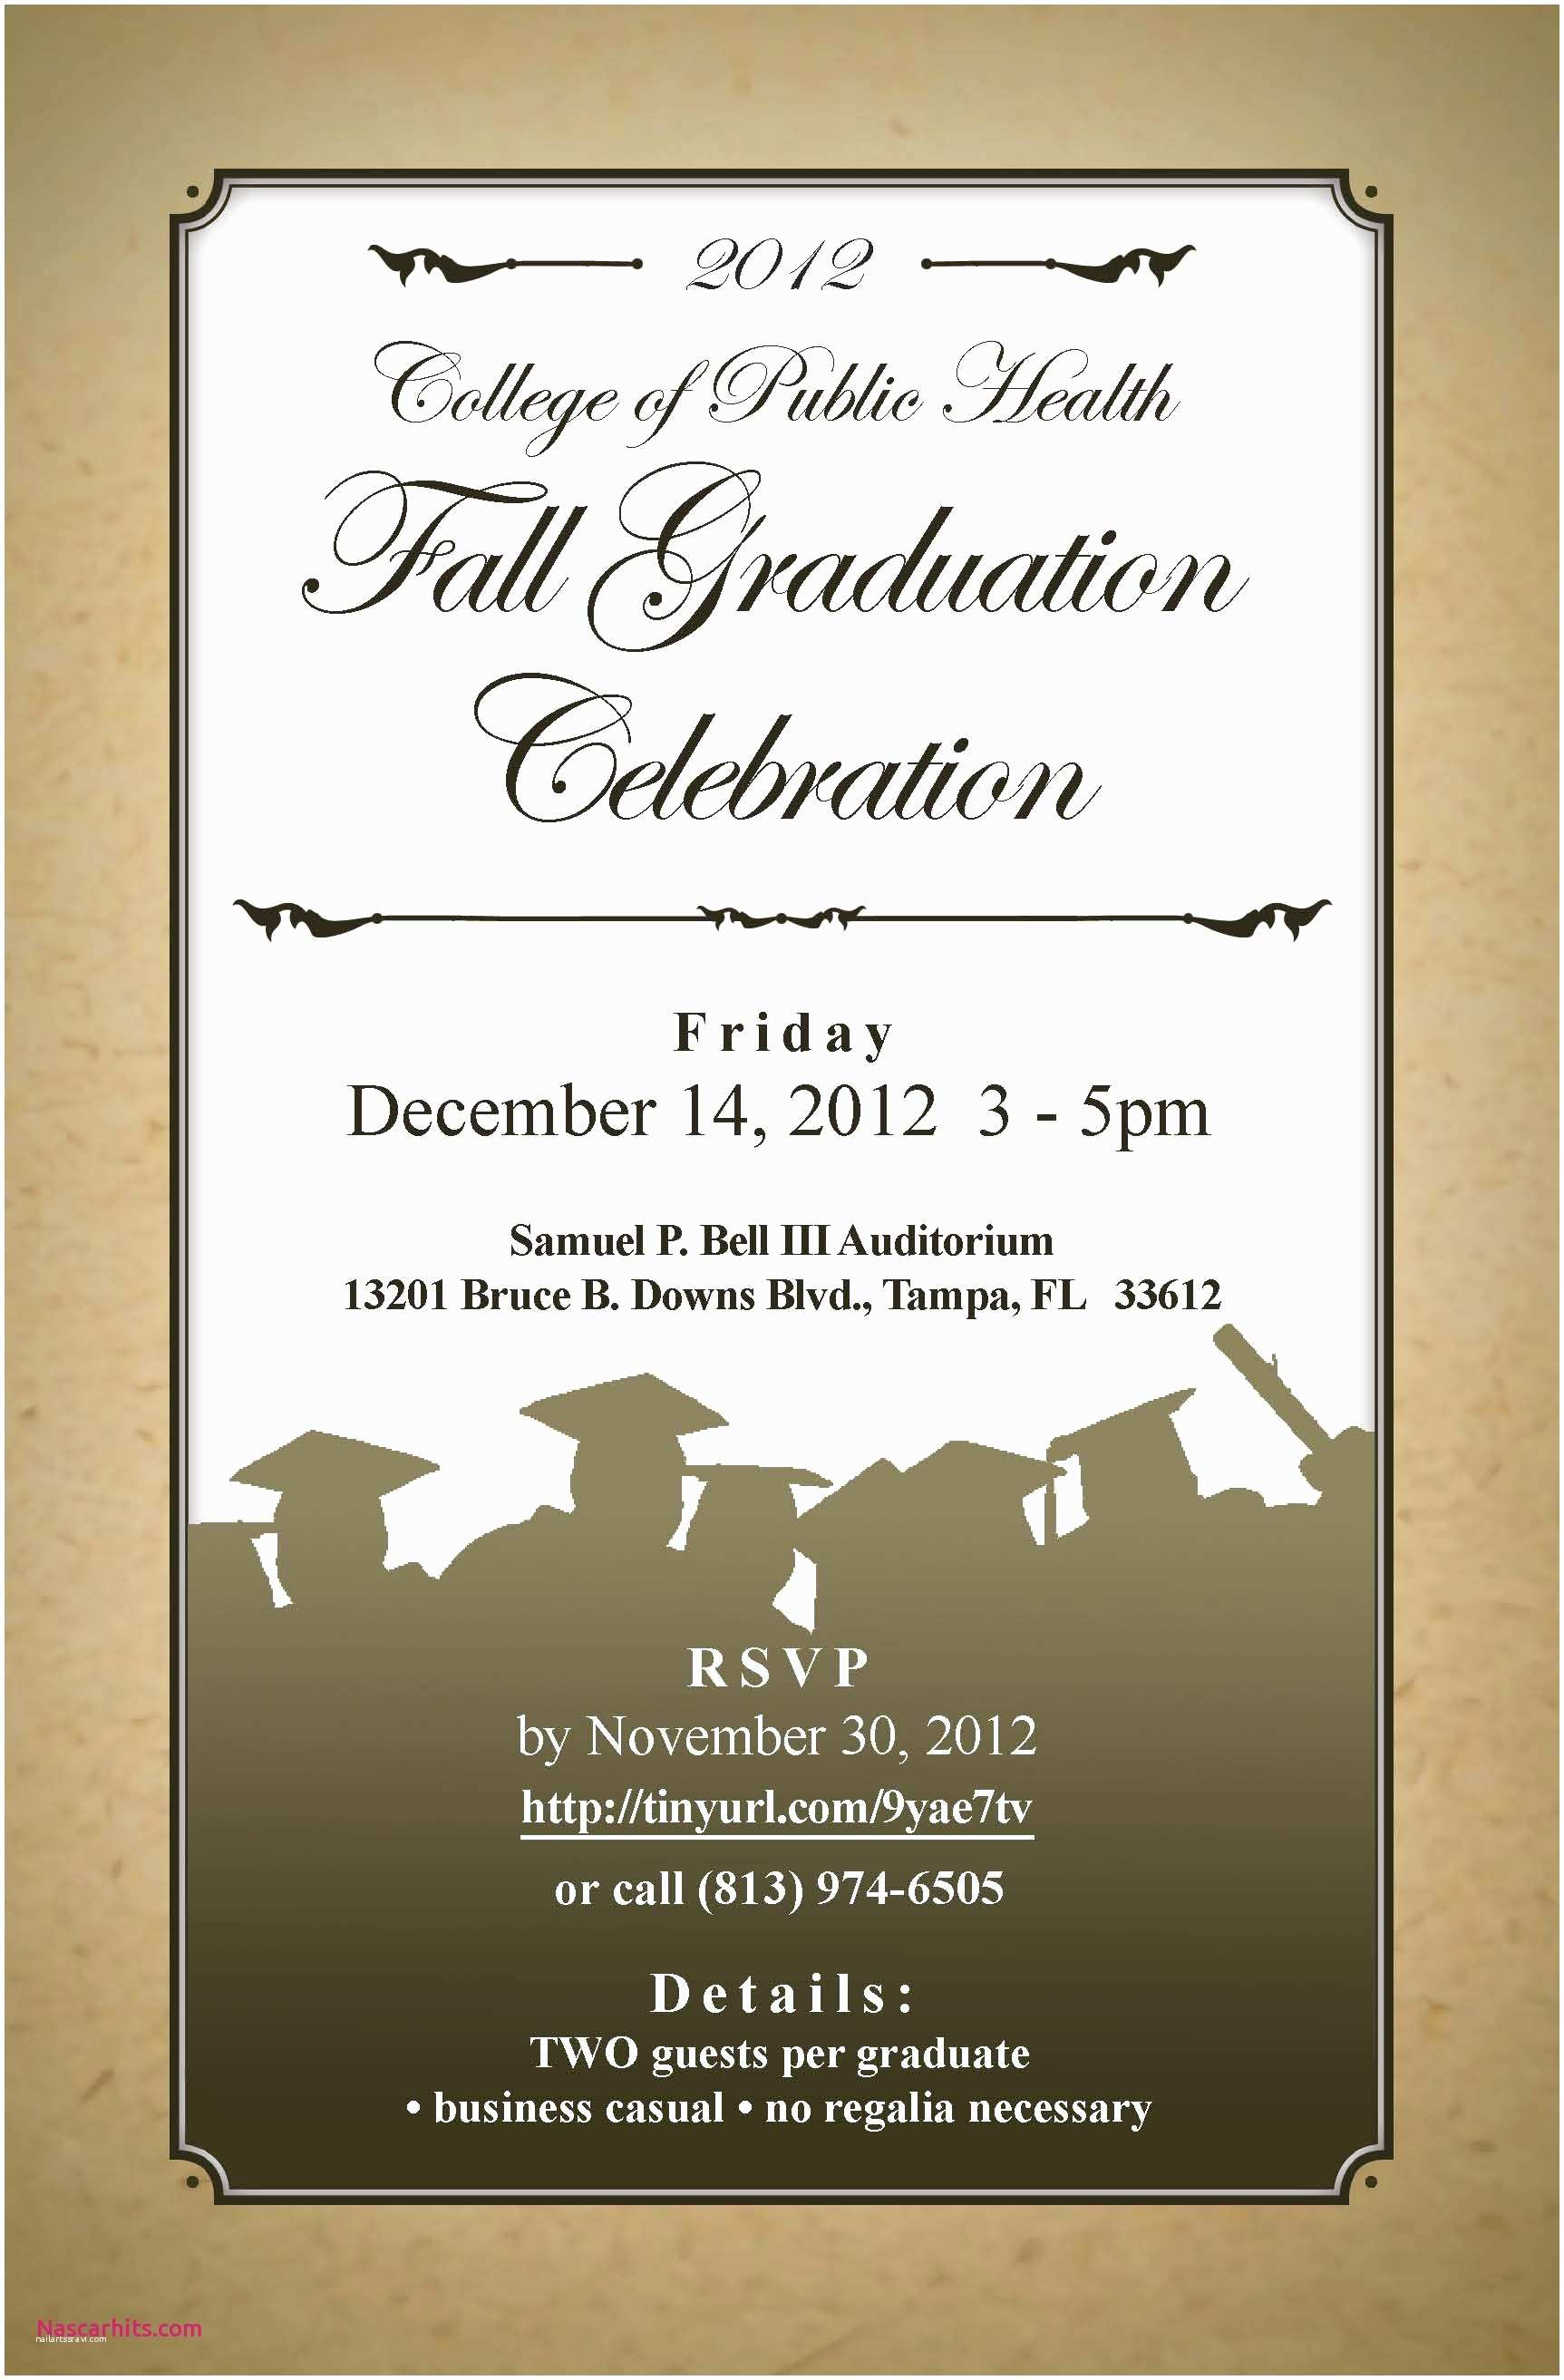 Formal Graduation Invitations Diy Formal Graduation